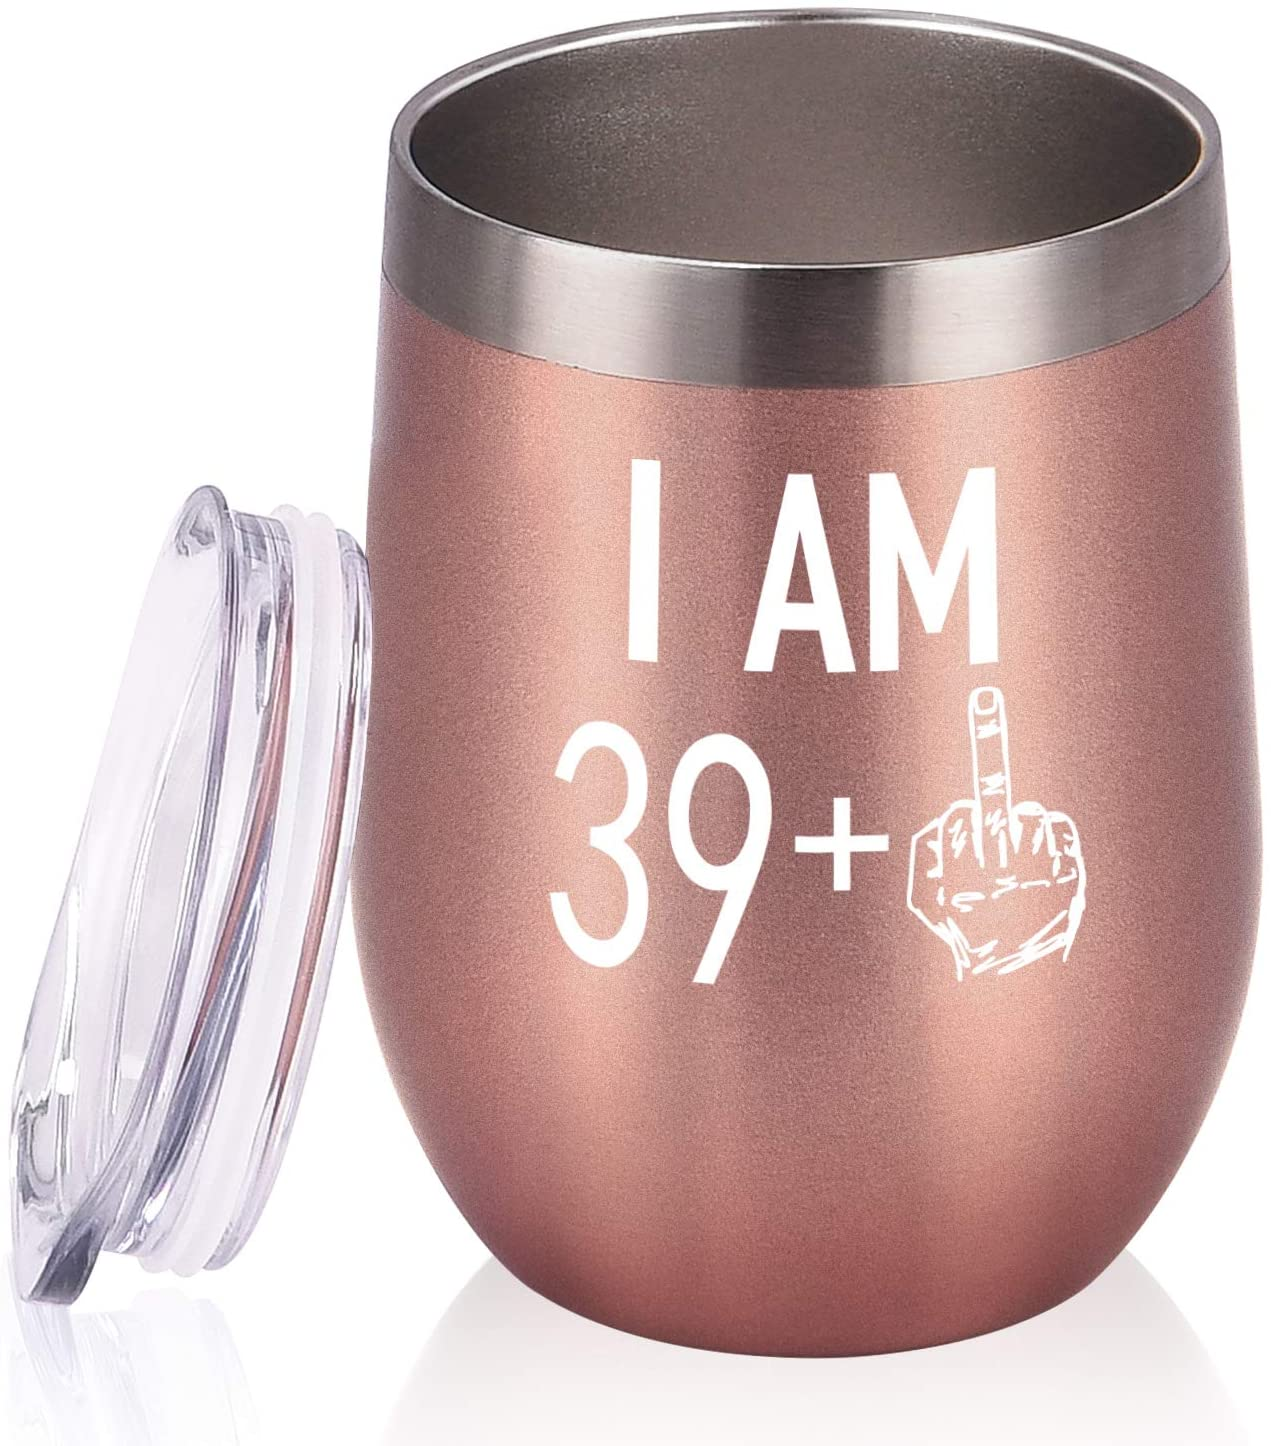 39 Plus One Middle Finger Wine Tumbler, 40th Birthday Gifts for Women Men, Wine Tumbler with Saying Funny Gifts Idea for Wife Mom Friends Coworkers, 12 Oz Insulated Wine Tumbler Glasses, Rose Gold